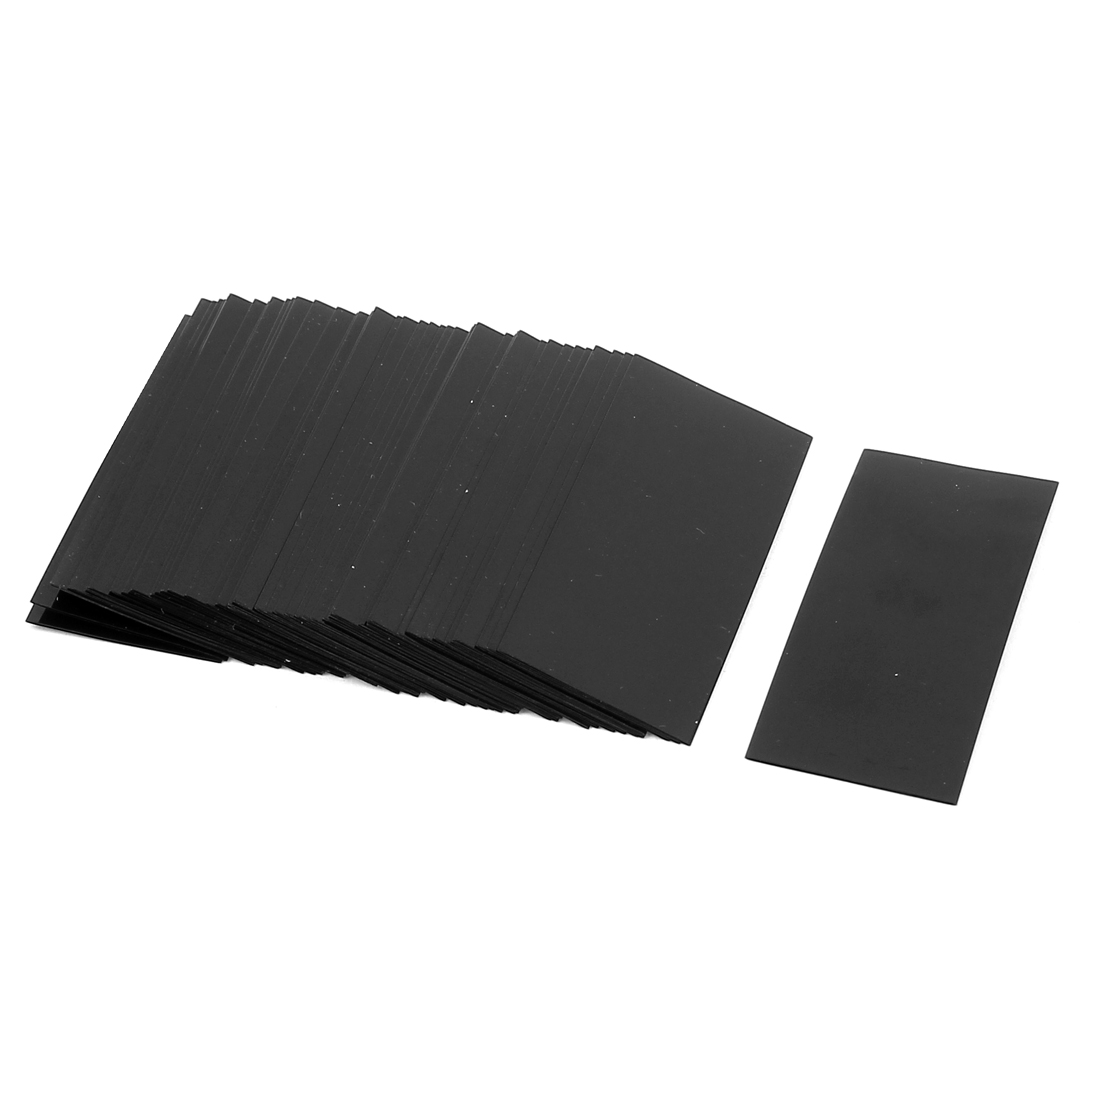 50pcs 23mm 14.5mm Dia PVC Heat Shrink Tubing Black for Single 1.5V AA Battery